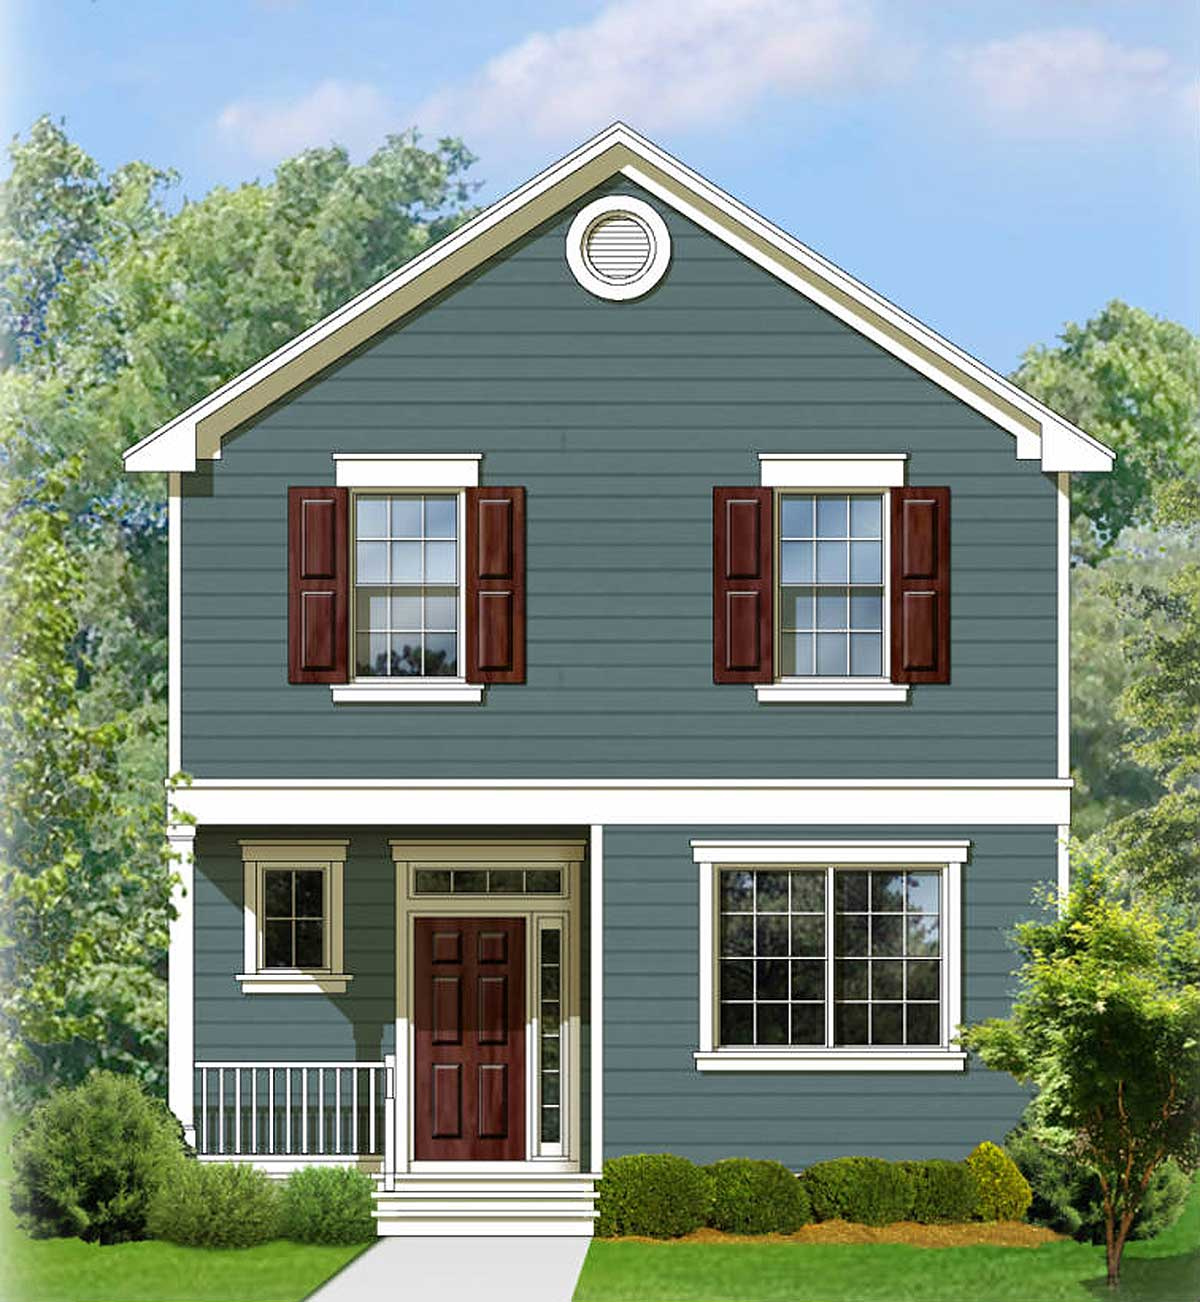 Two story traditional house plan 82083ka architectural for Traditional house plans two story